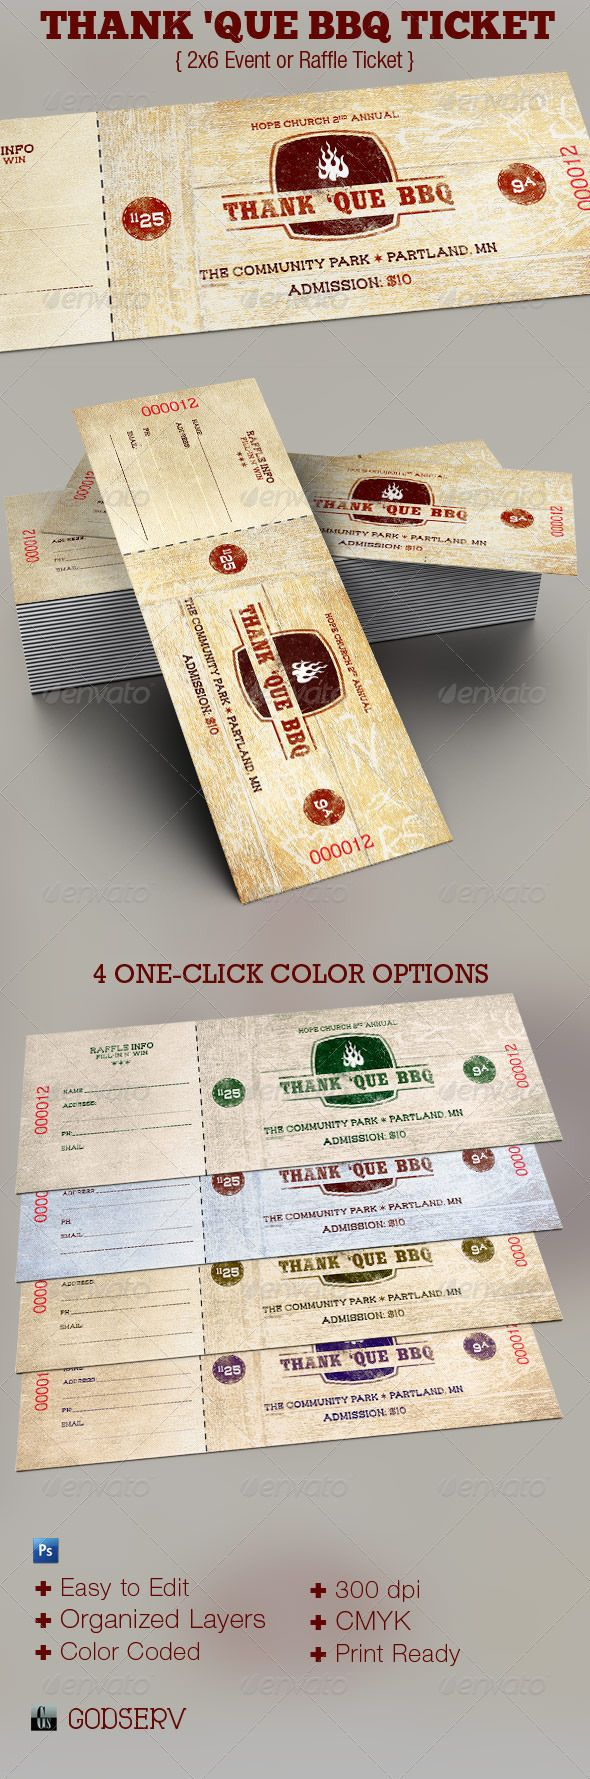 best images about design tickets event 17 best images about design tickets event tickets ticket design and movie night invitations